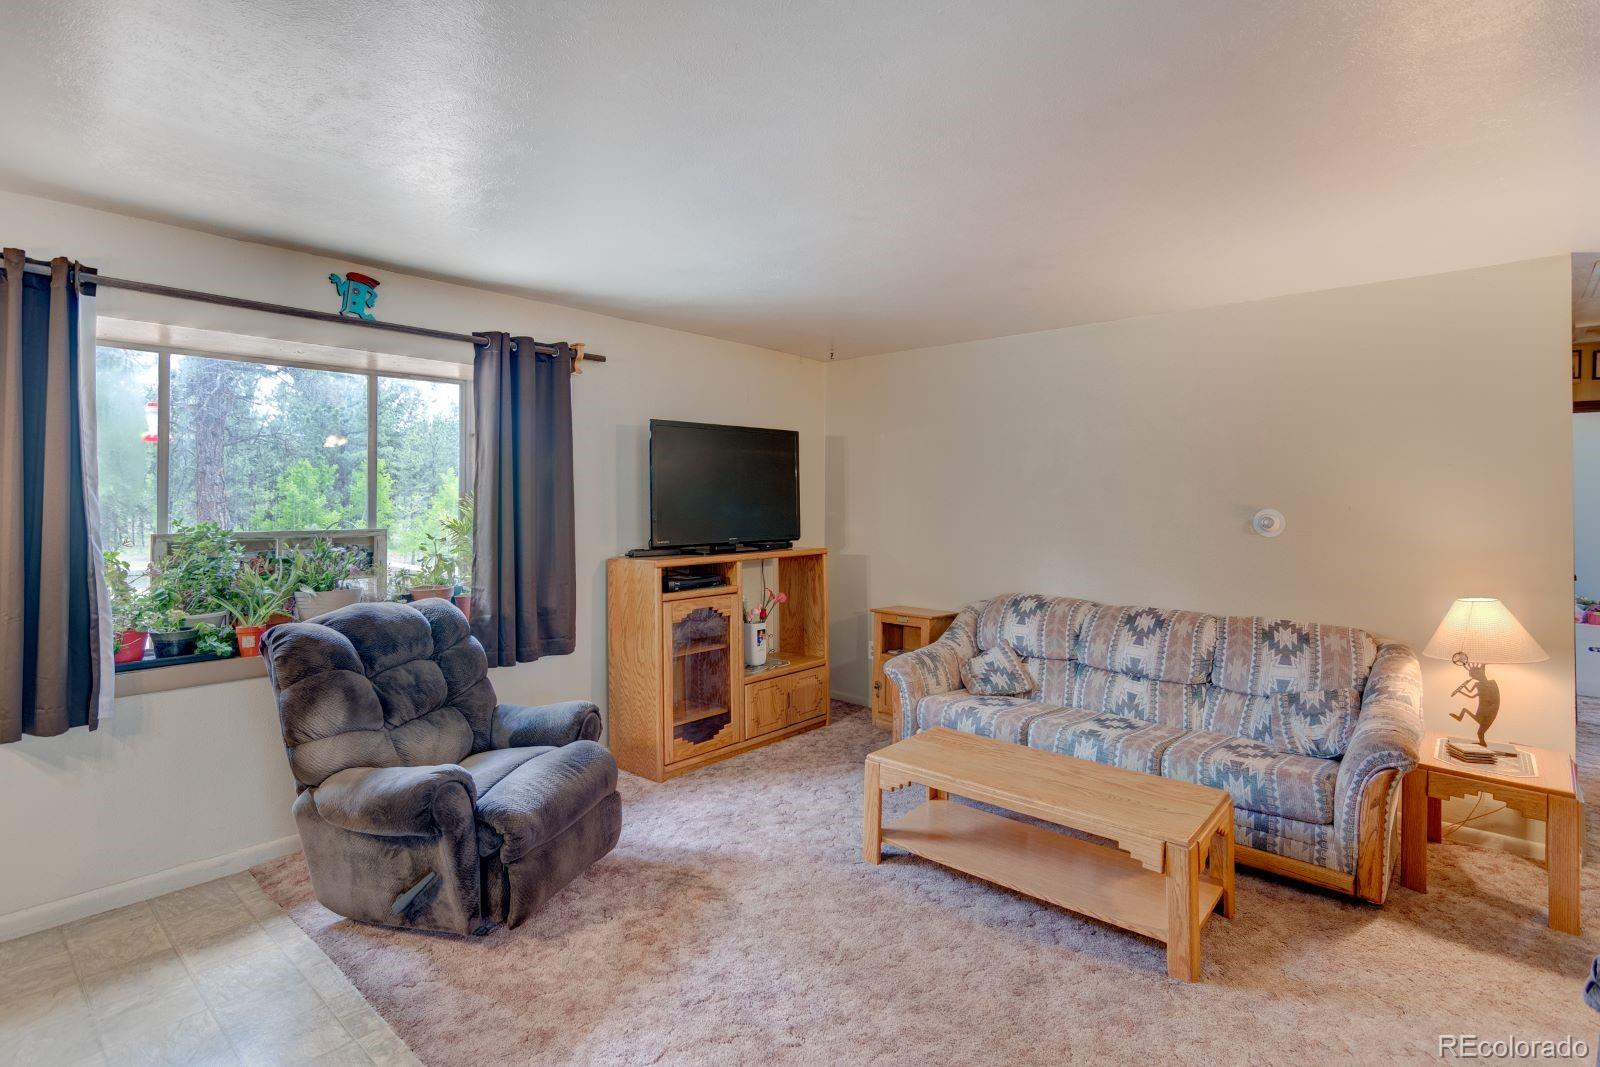 MLS# 7974554 - 6 - 810 Tincup Terrace, Bailey, CO 80421